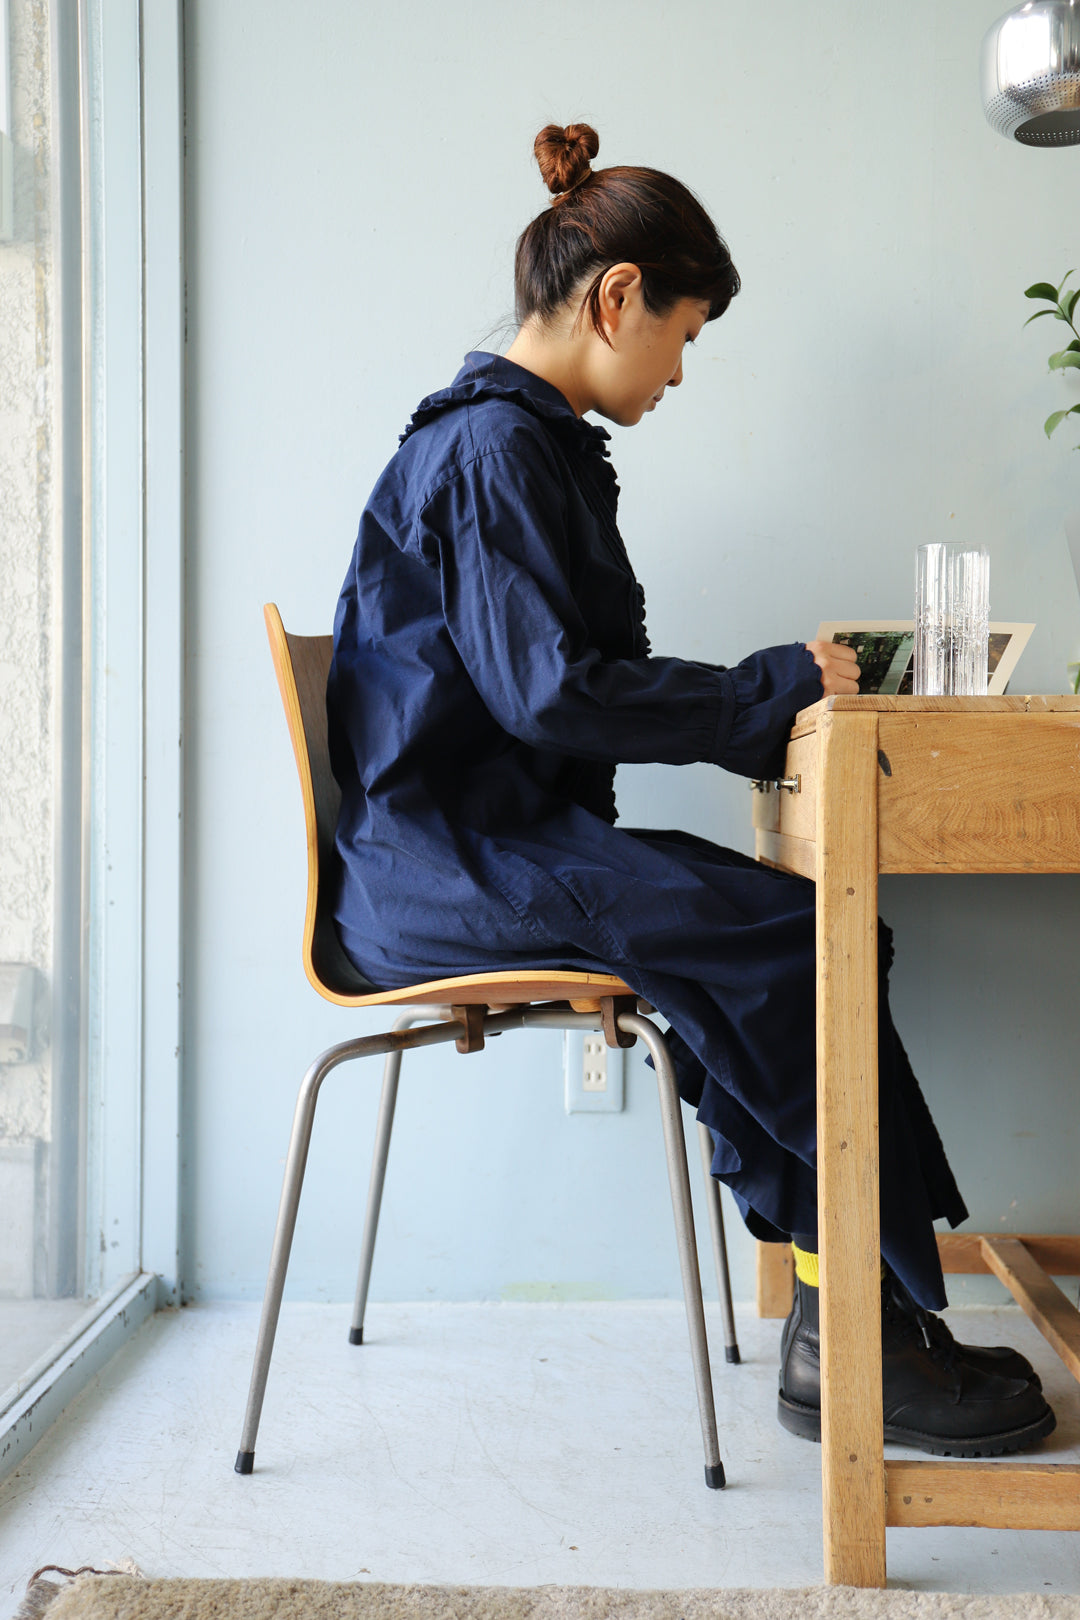 MH Stålmøbler Teak Plywood Stacking Chair/デンマークヴィンテージ スタッキングチェア チーク材 プライウッド 椅子 ミッドセンチュリー モダン 北欧家具